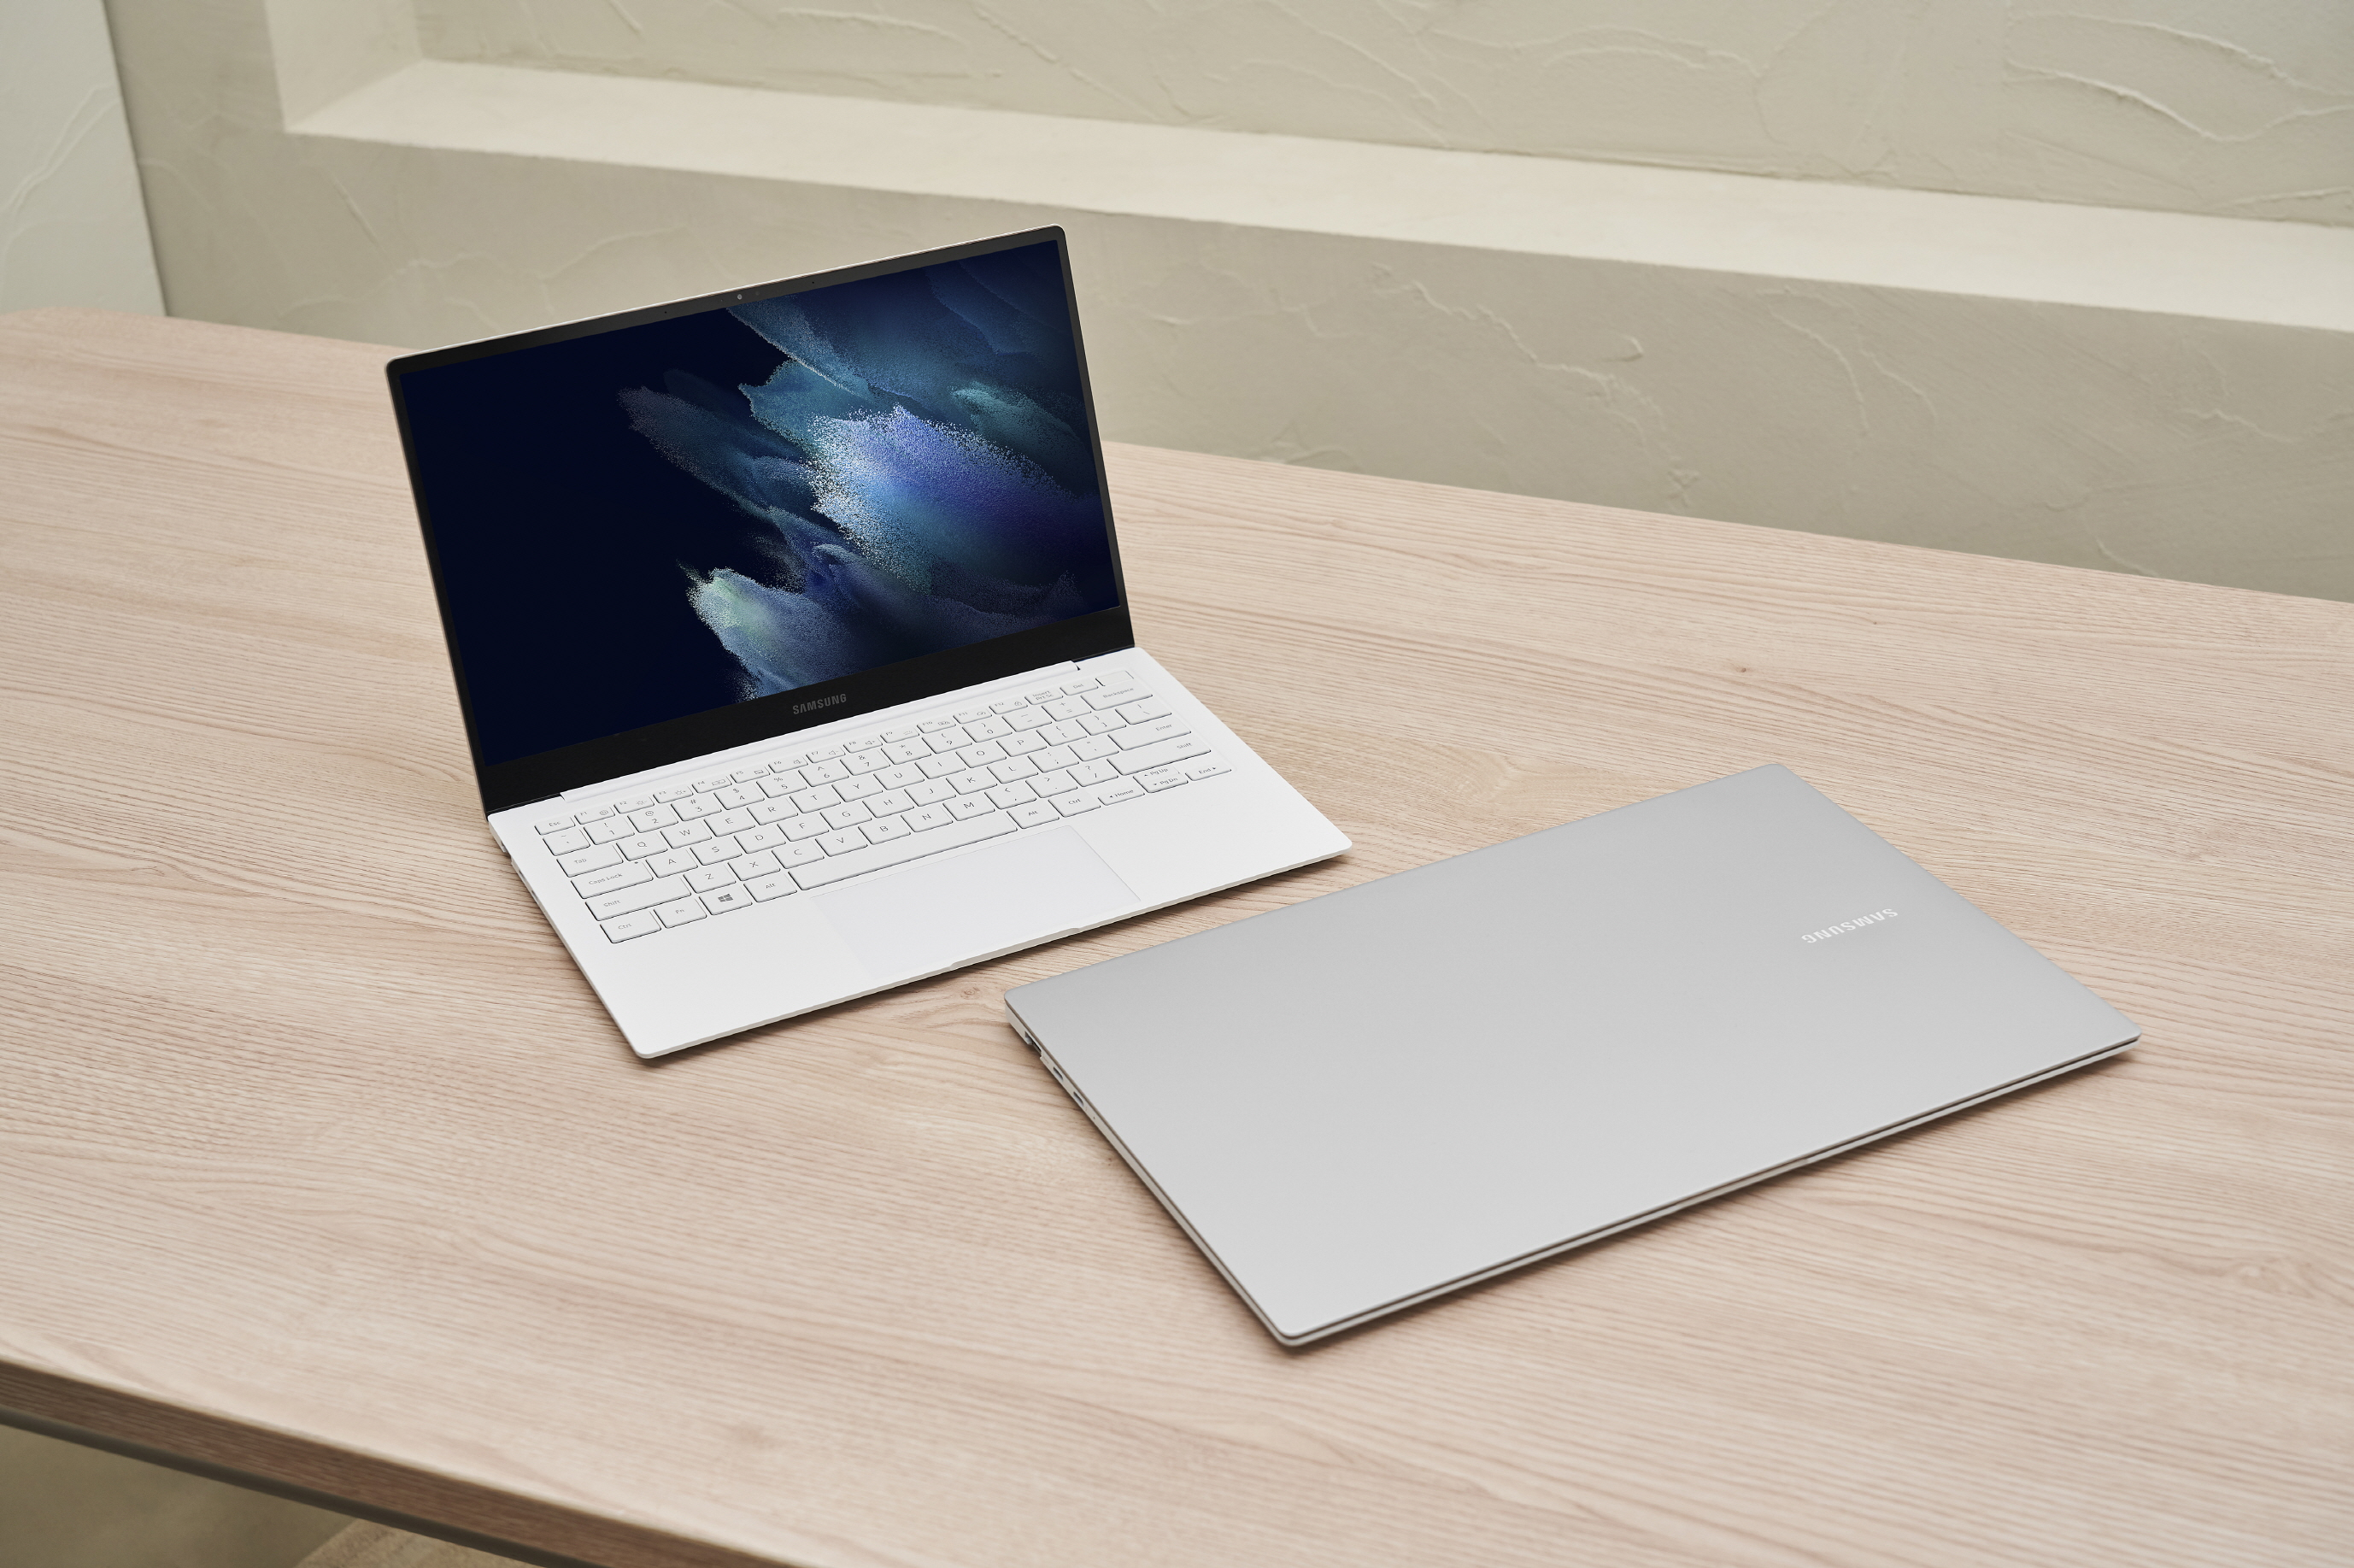 The Galaxy Book Pro series laptops are the first Windows devices from Samsung to feature AMOLED screens